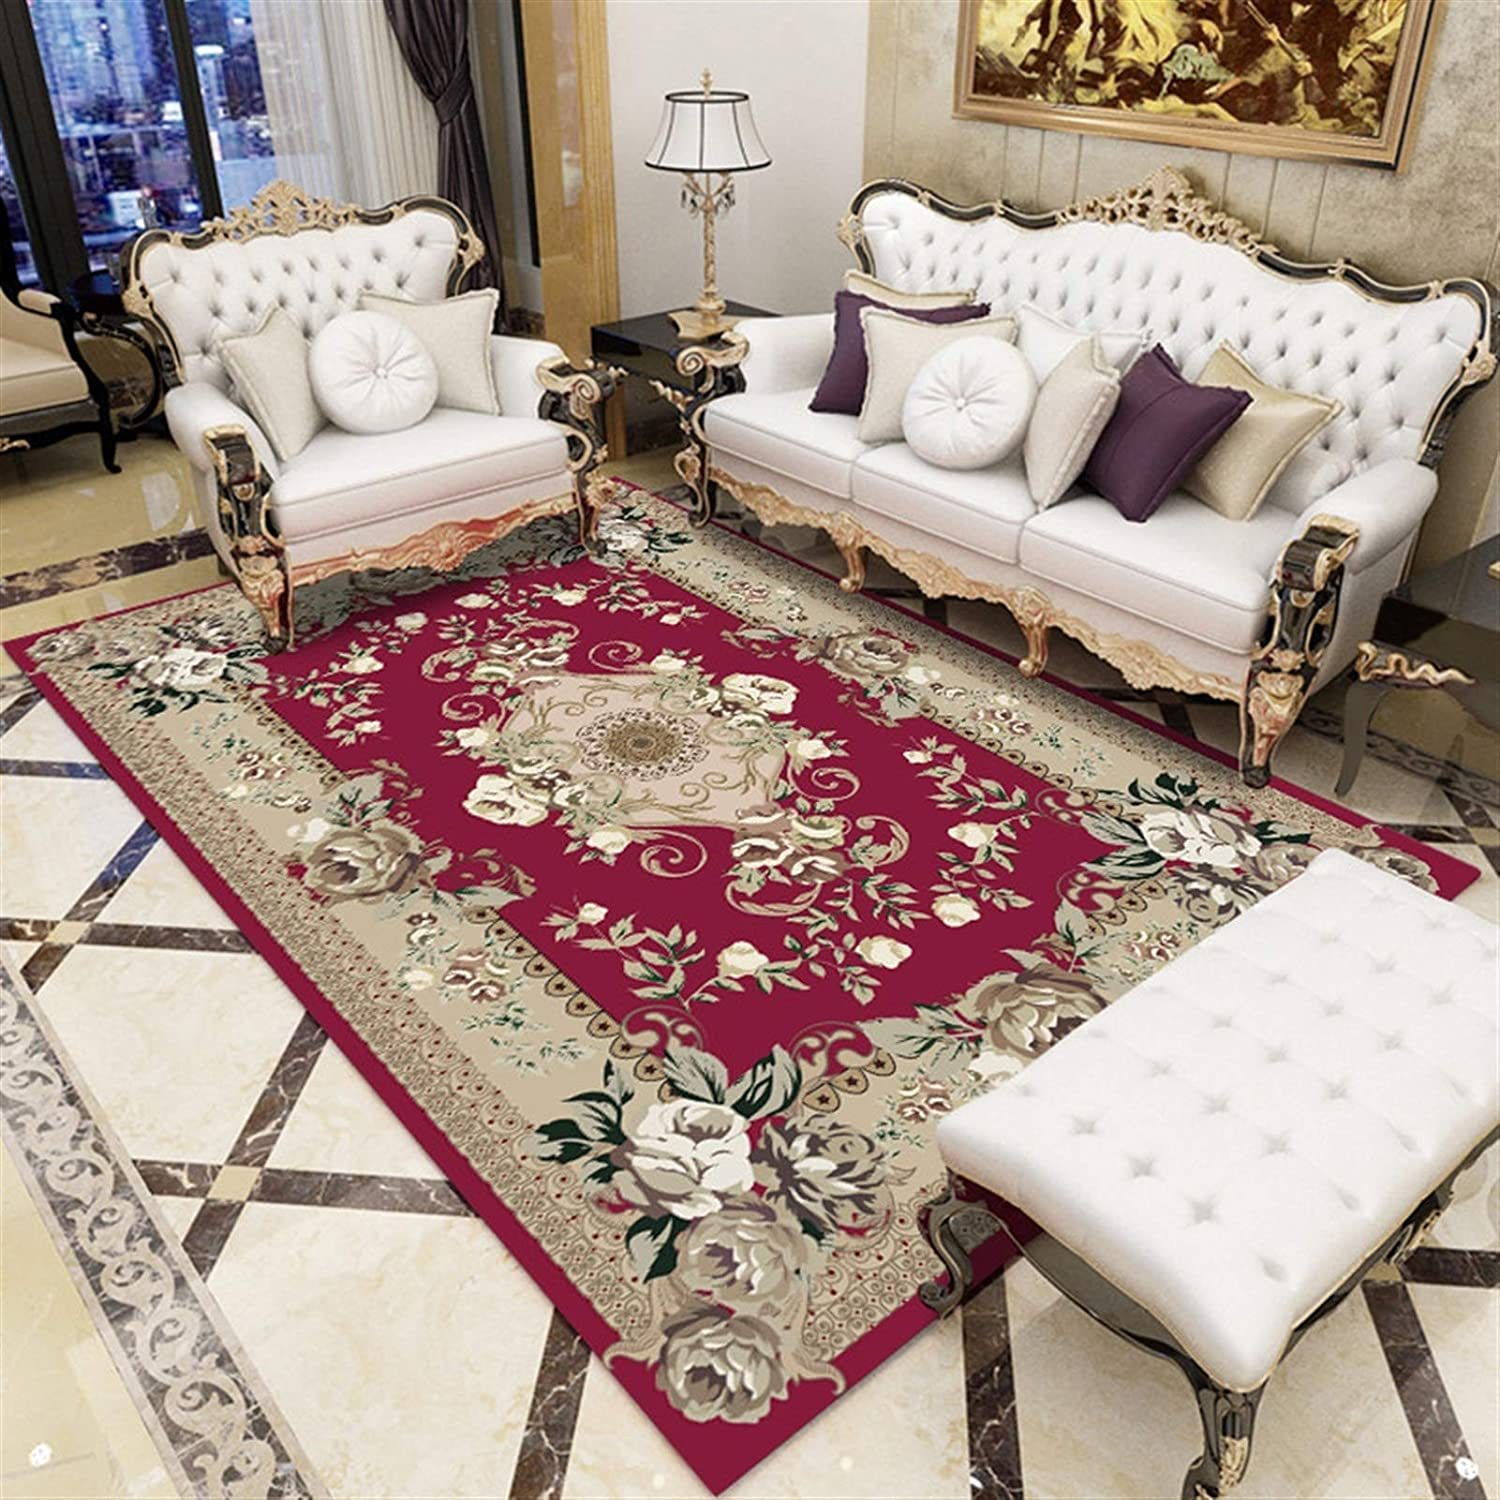 LINFENG Retro Popular Charlotte Mall shop is the lowest price challenge Carpet Multifunctional Household Non-Slip f